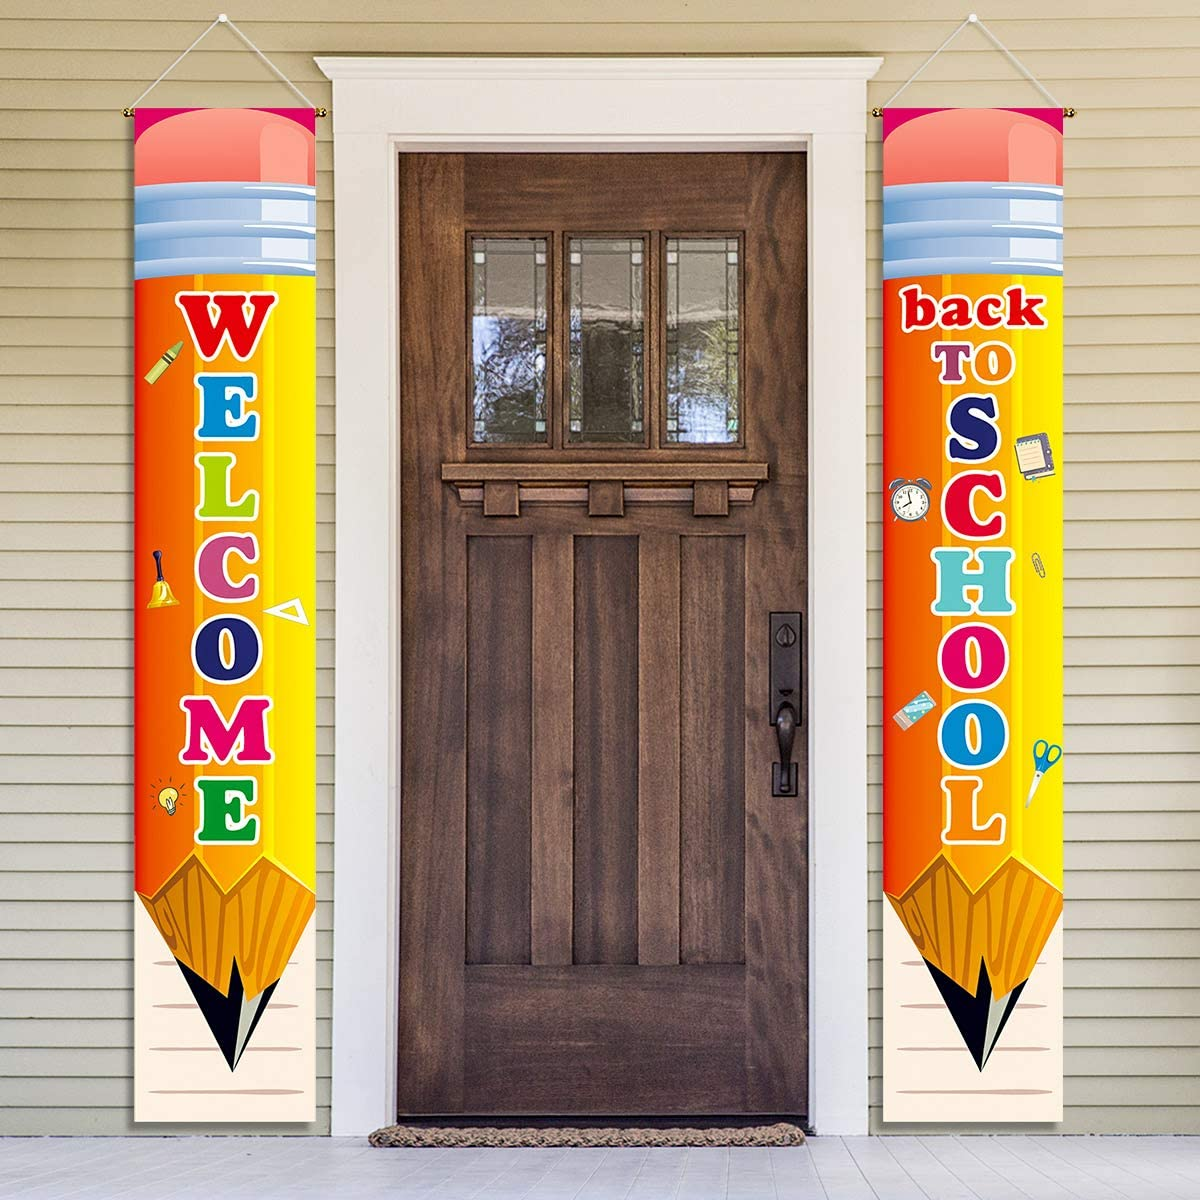 Welcome Back to School Party Decorations Porch Sign Hanging Backdrop Banner 2020 - First Day Of School Party Supplies Classroom Office School Photo Booth Prop Wall Hanging Decorations Indoor/Outdoor